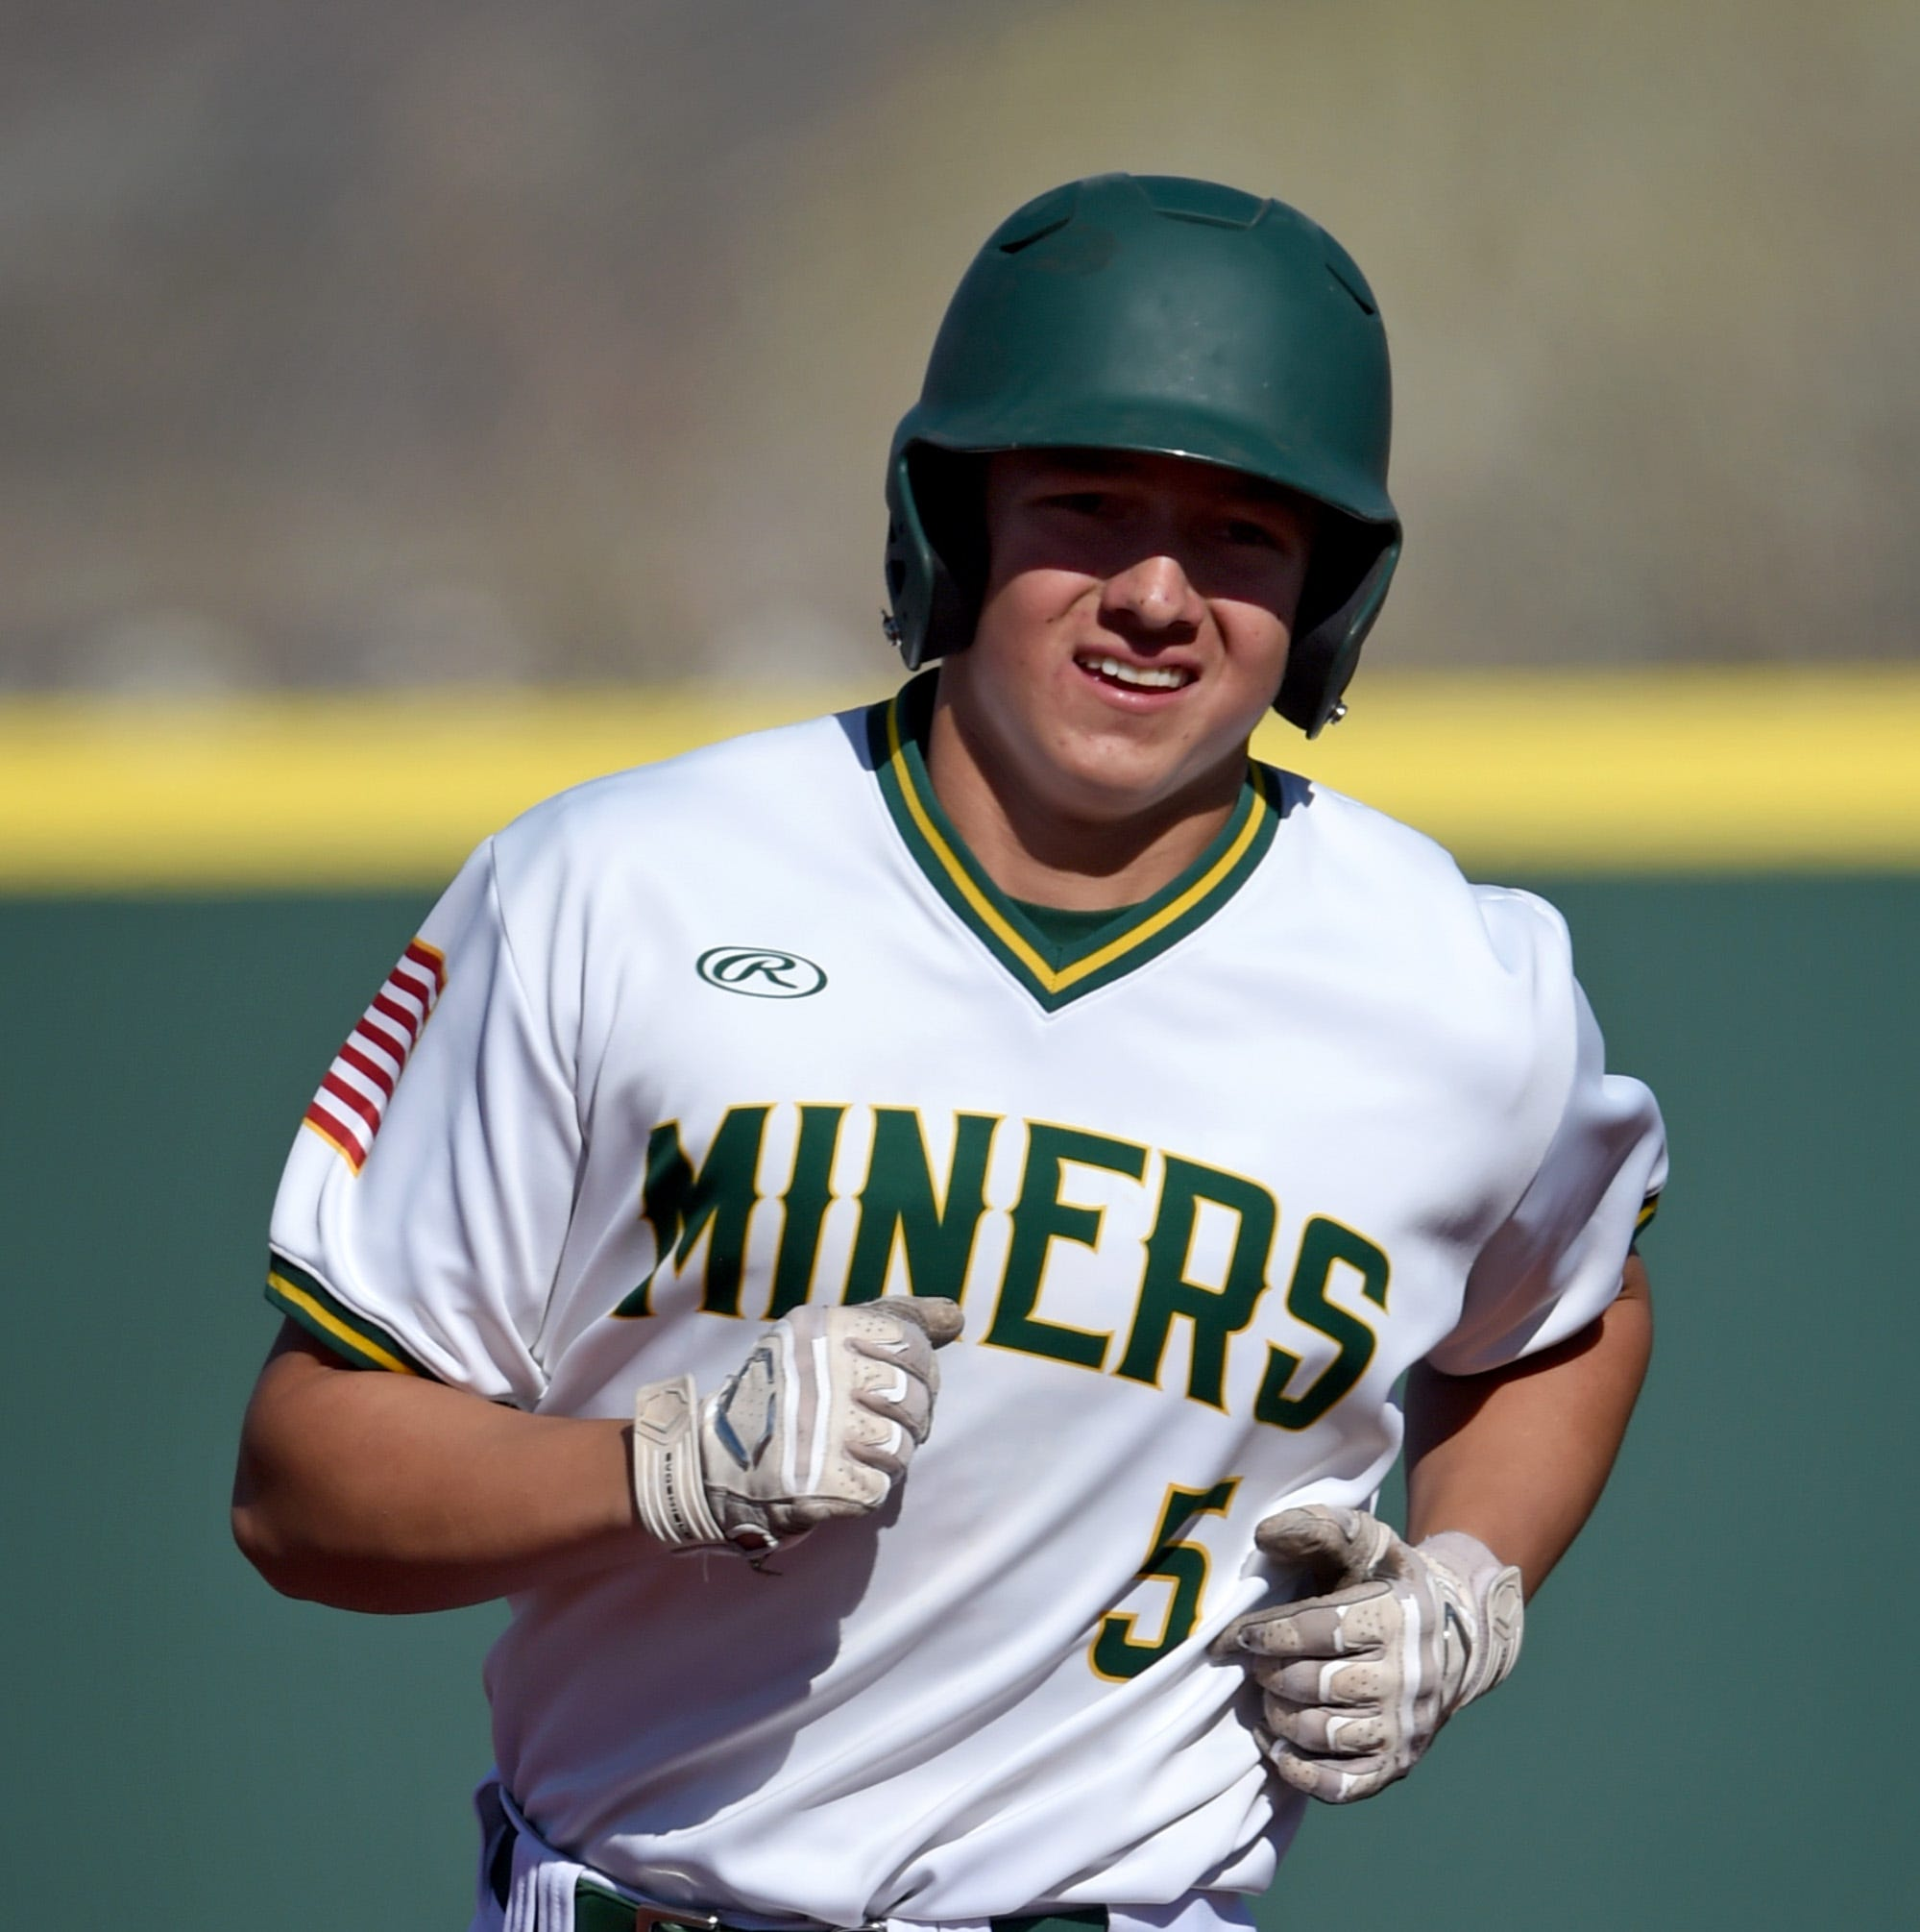 Fresh off ACL surgery, Manogue junior Charles leading North in batting